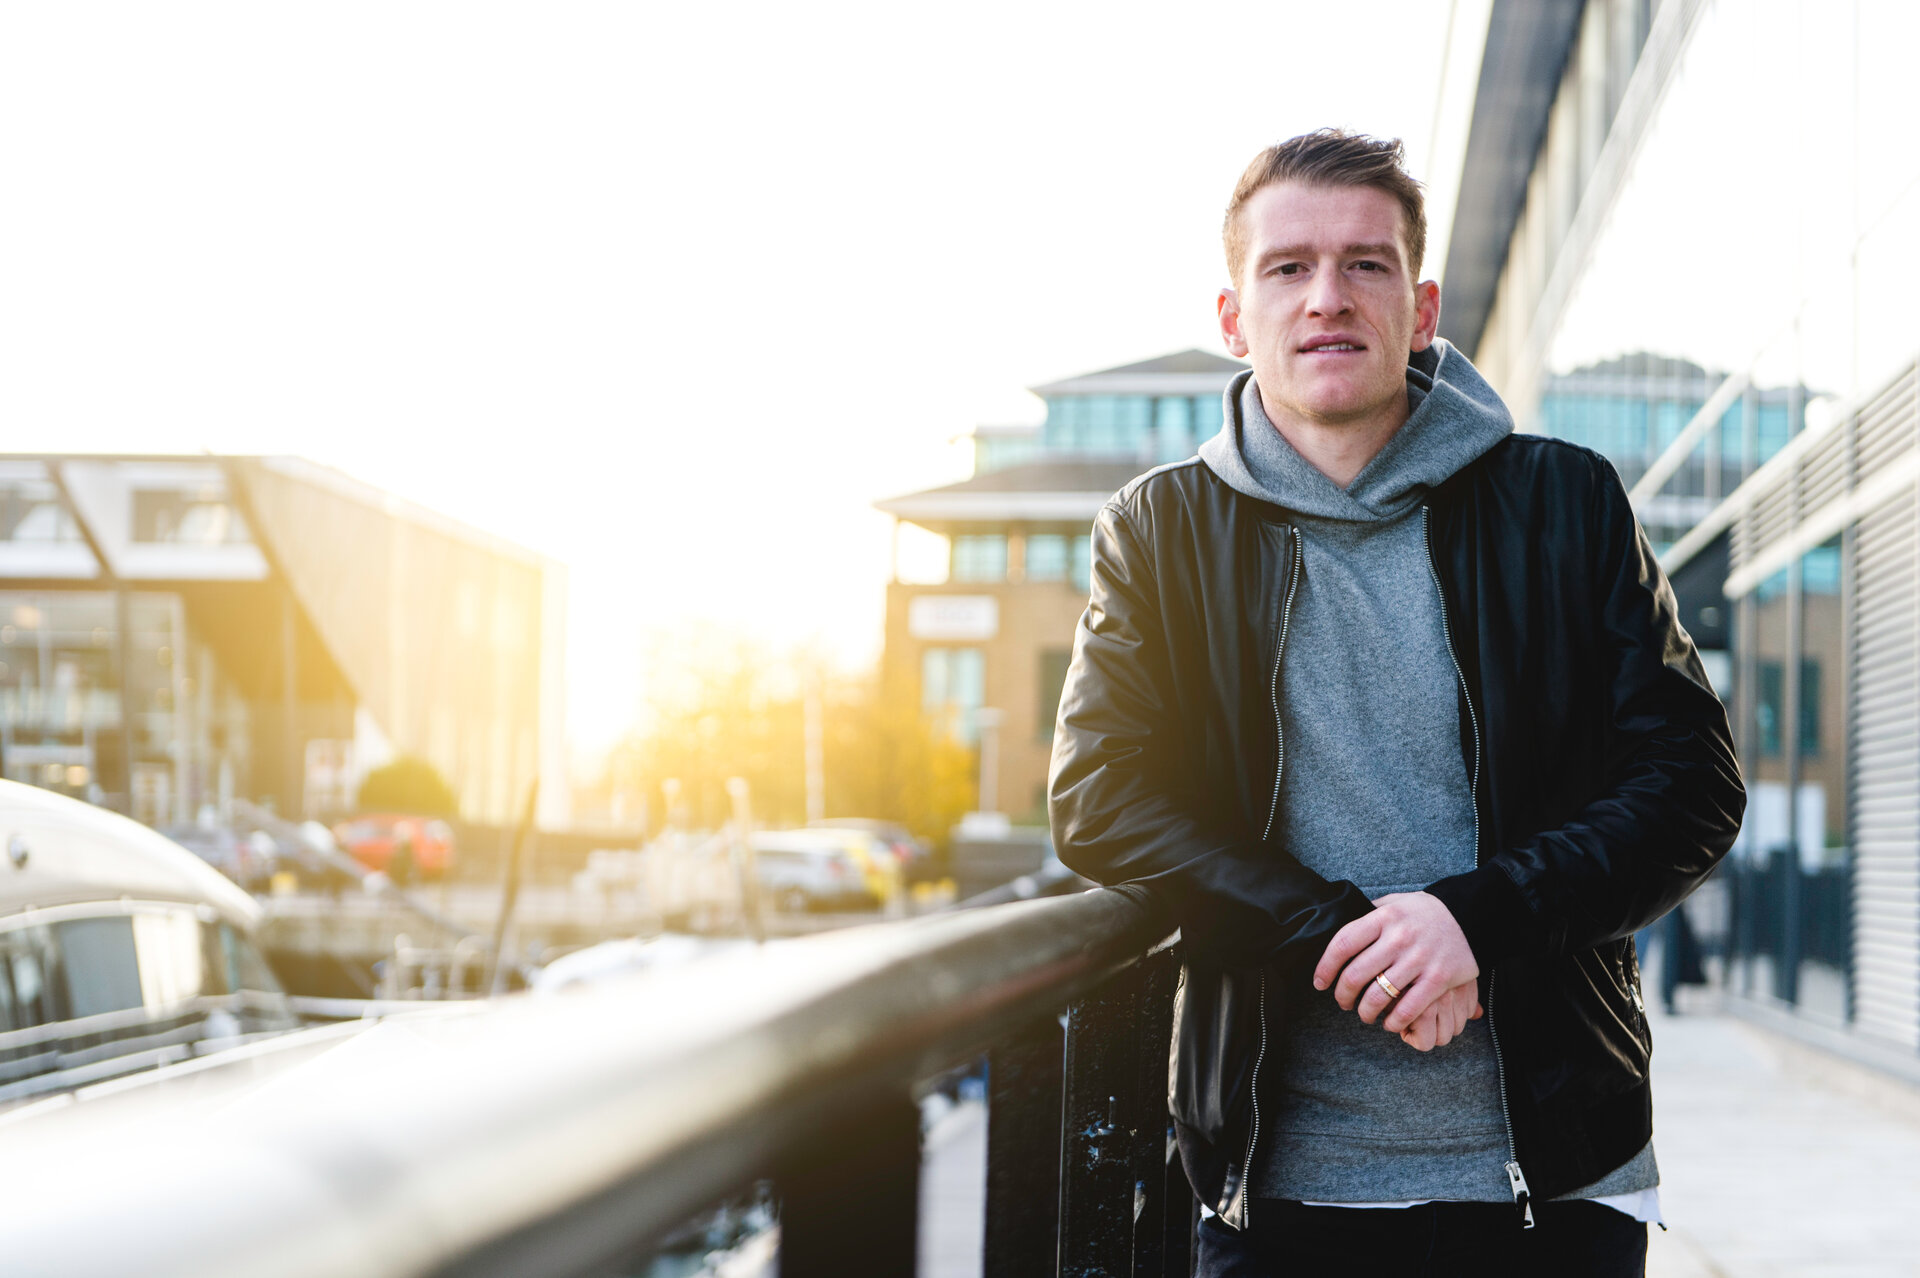 SOUTHAMPTON, ENGLAND - NOVEMBER 22: Steven Davis match day magazine shoot at the Harbour Hotel, Southampton on November 22, 2017 in Southampton, England. (Photo by James Bridle - Southampton FC/Southampton FC via Getty Images)